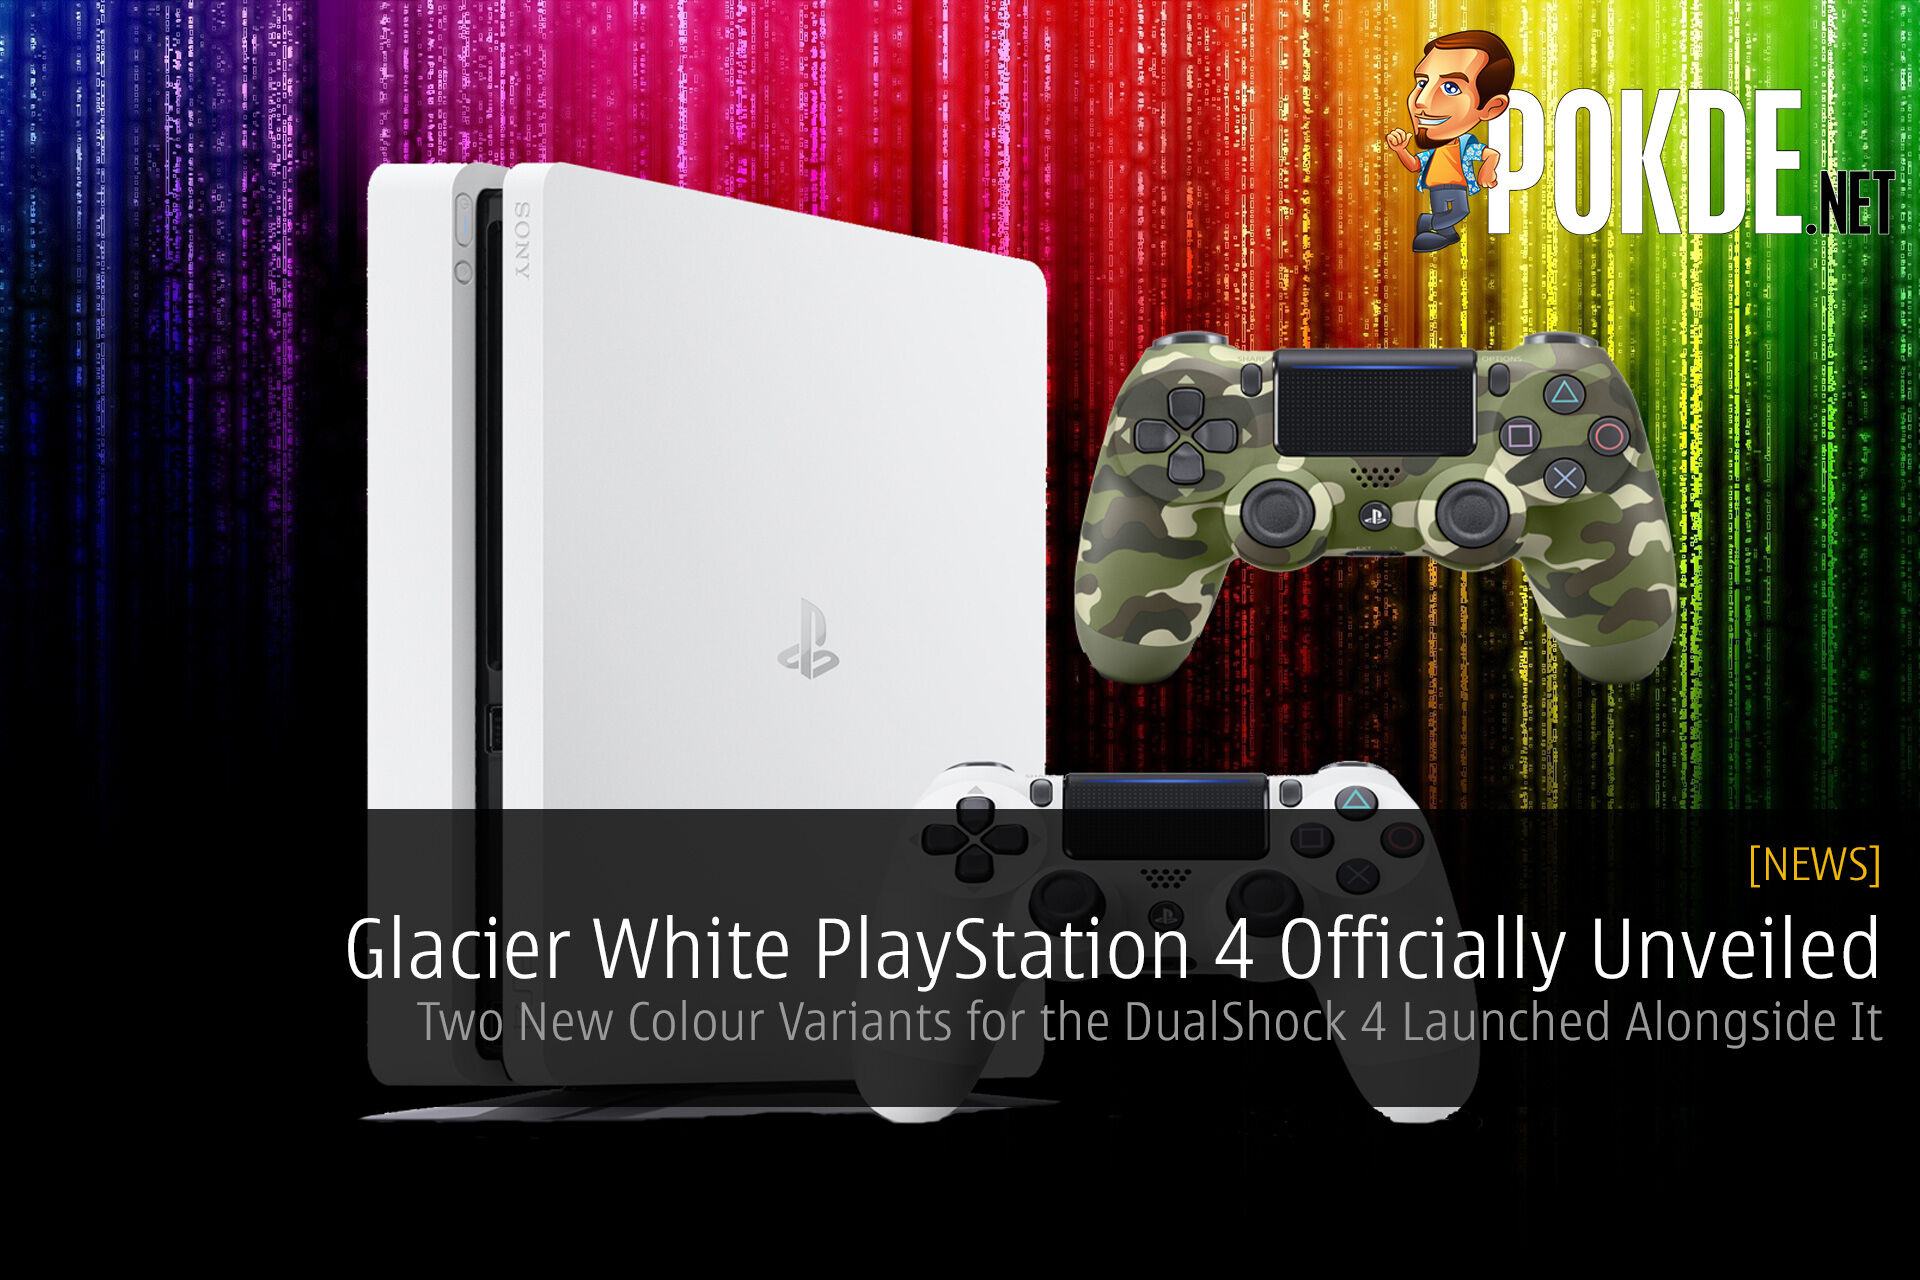 PlayStation 4 PS4 Glacier White